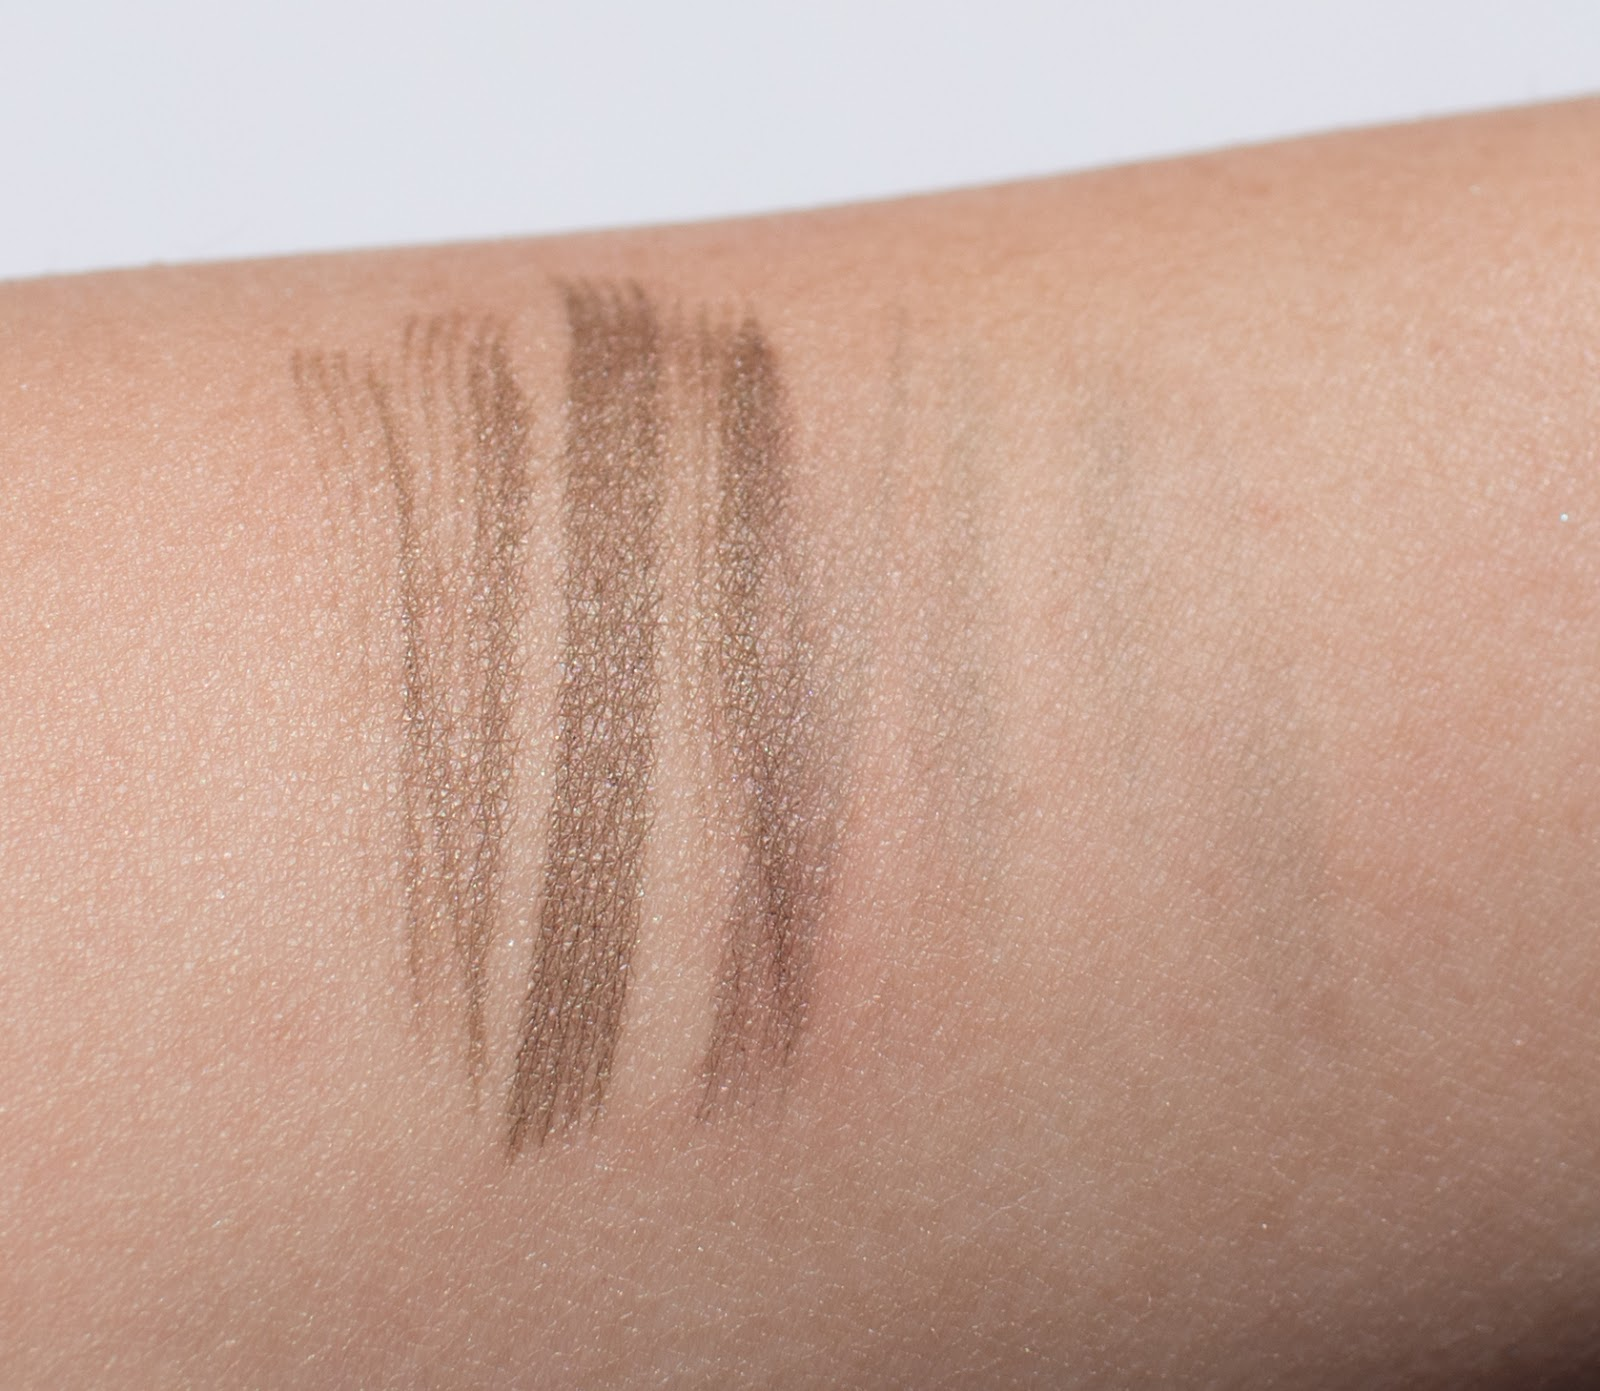 Maybelline TattooStudio Brow Tint Pen Makeup Stain